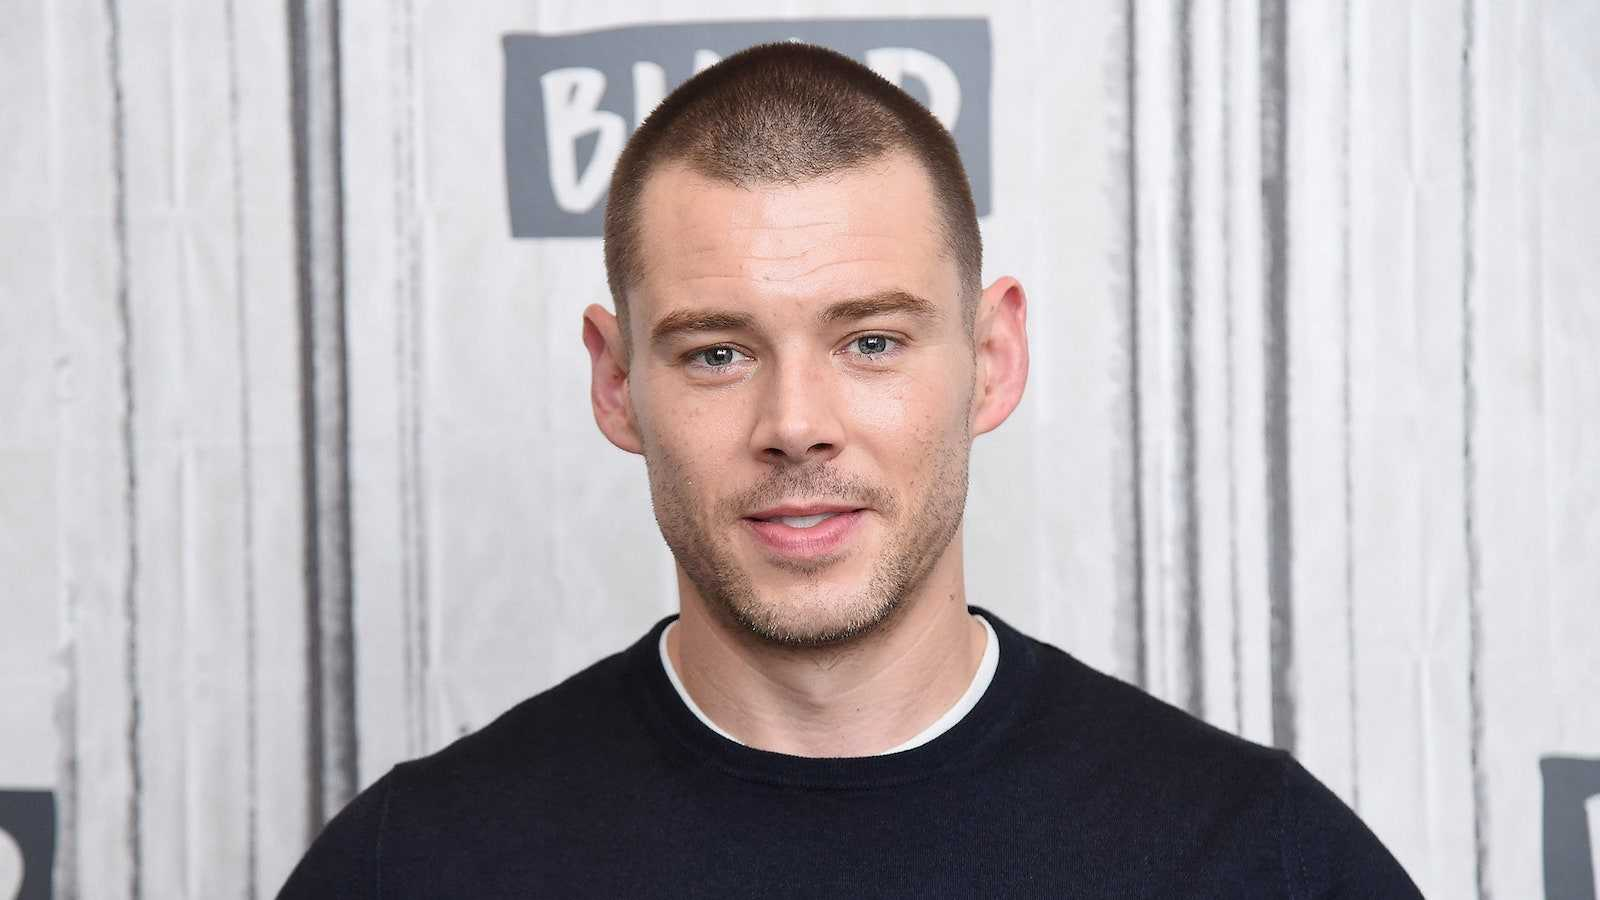 Brian J. Smith is an openly gay actor who got his big break in Sense8